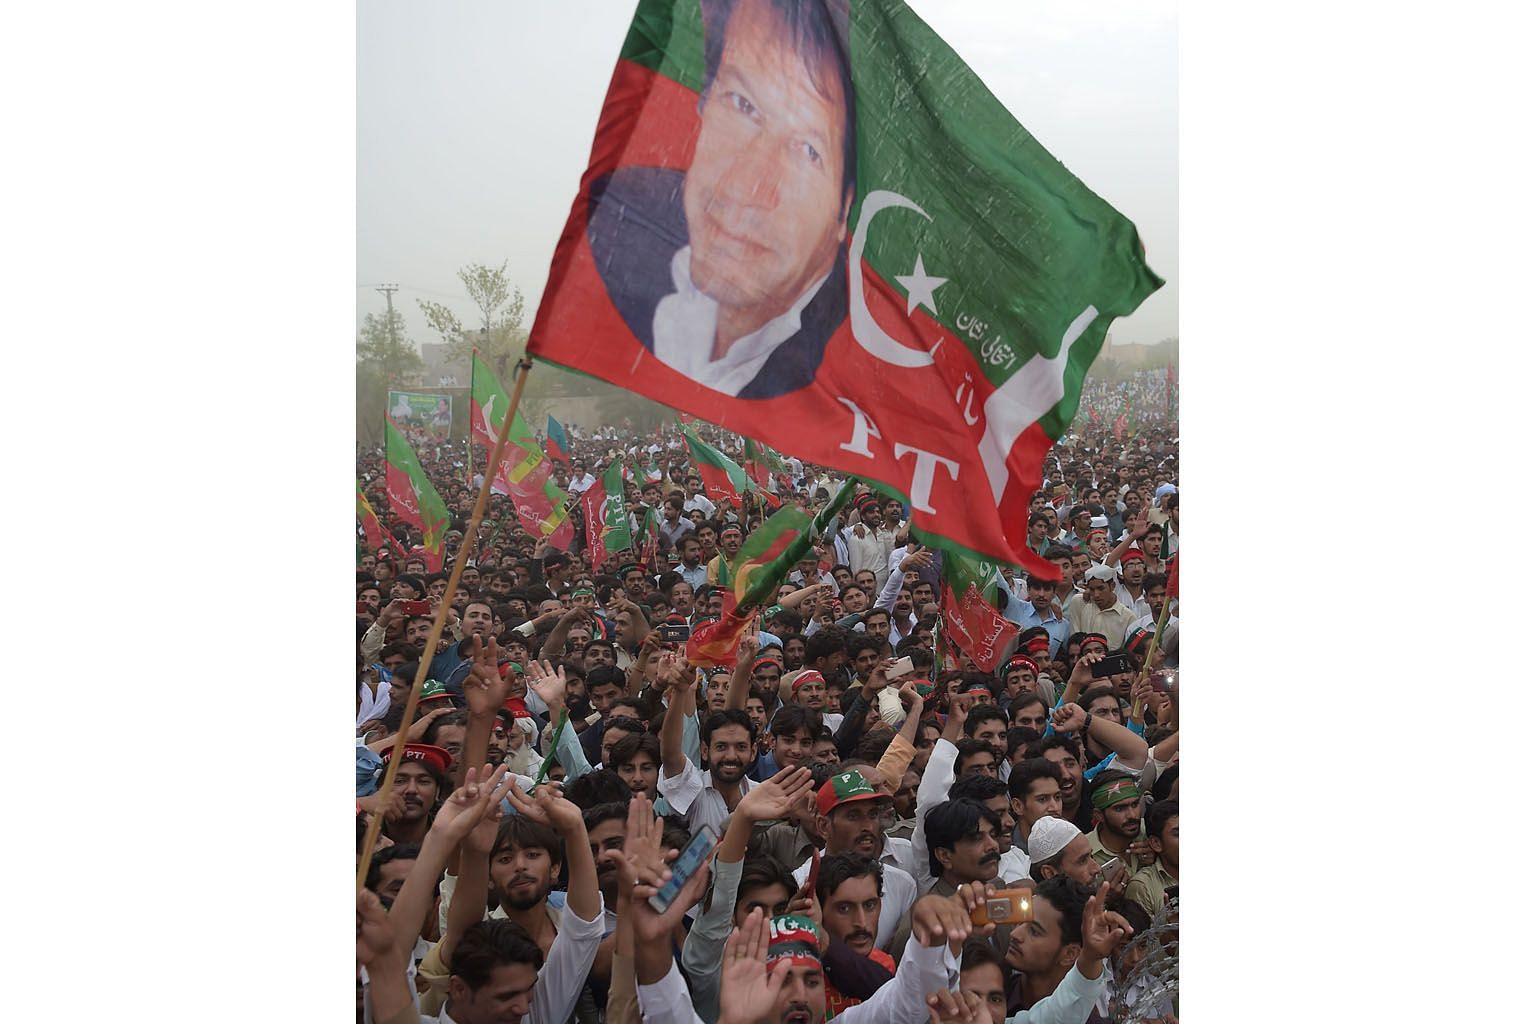 Supporters of Pakistani politician Imran Khan at an election campaign this month. Many believe Mr Khan is in line for elevation to prime minister with the security establishment's support.